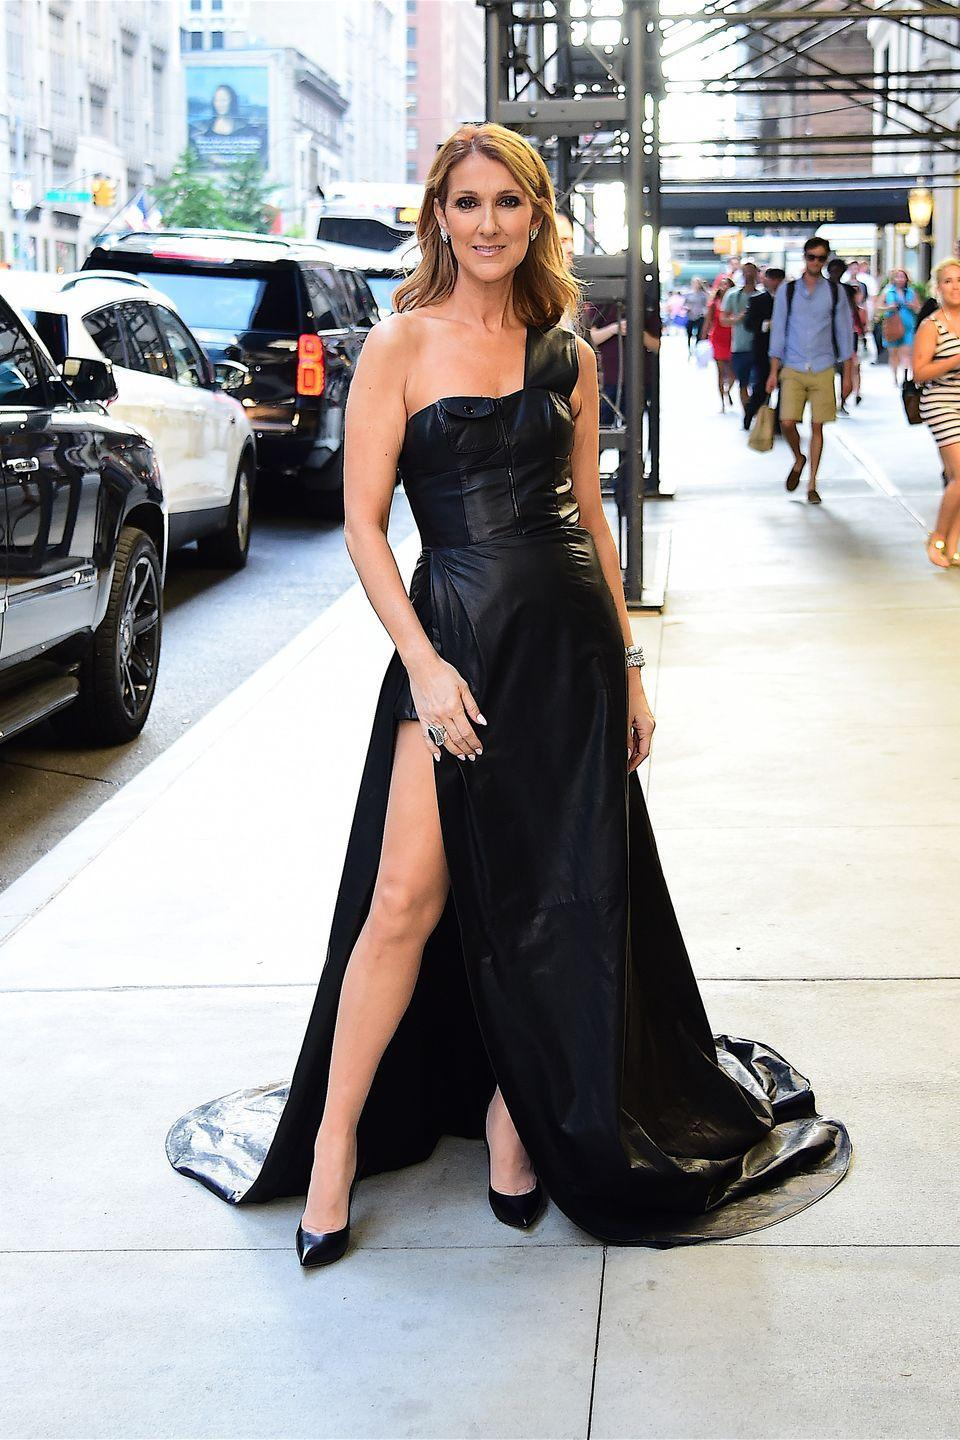 <p>In a black leather high-slit gown while out in New York. <br></p>